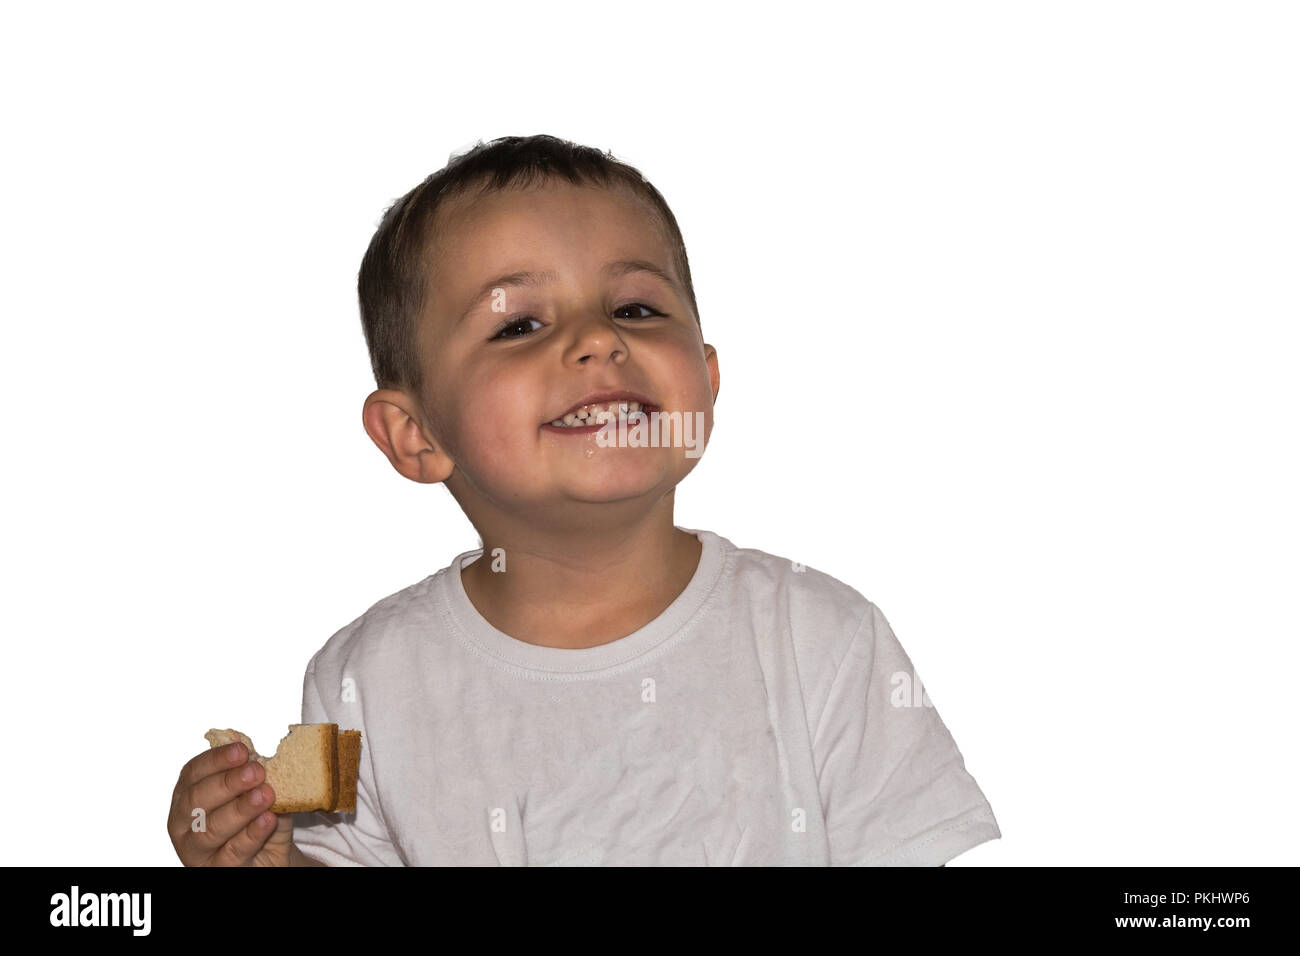 Little laughing boy with toast in hand is standing in front of a white background. - Stock Image